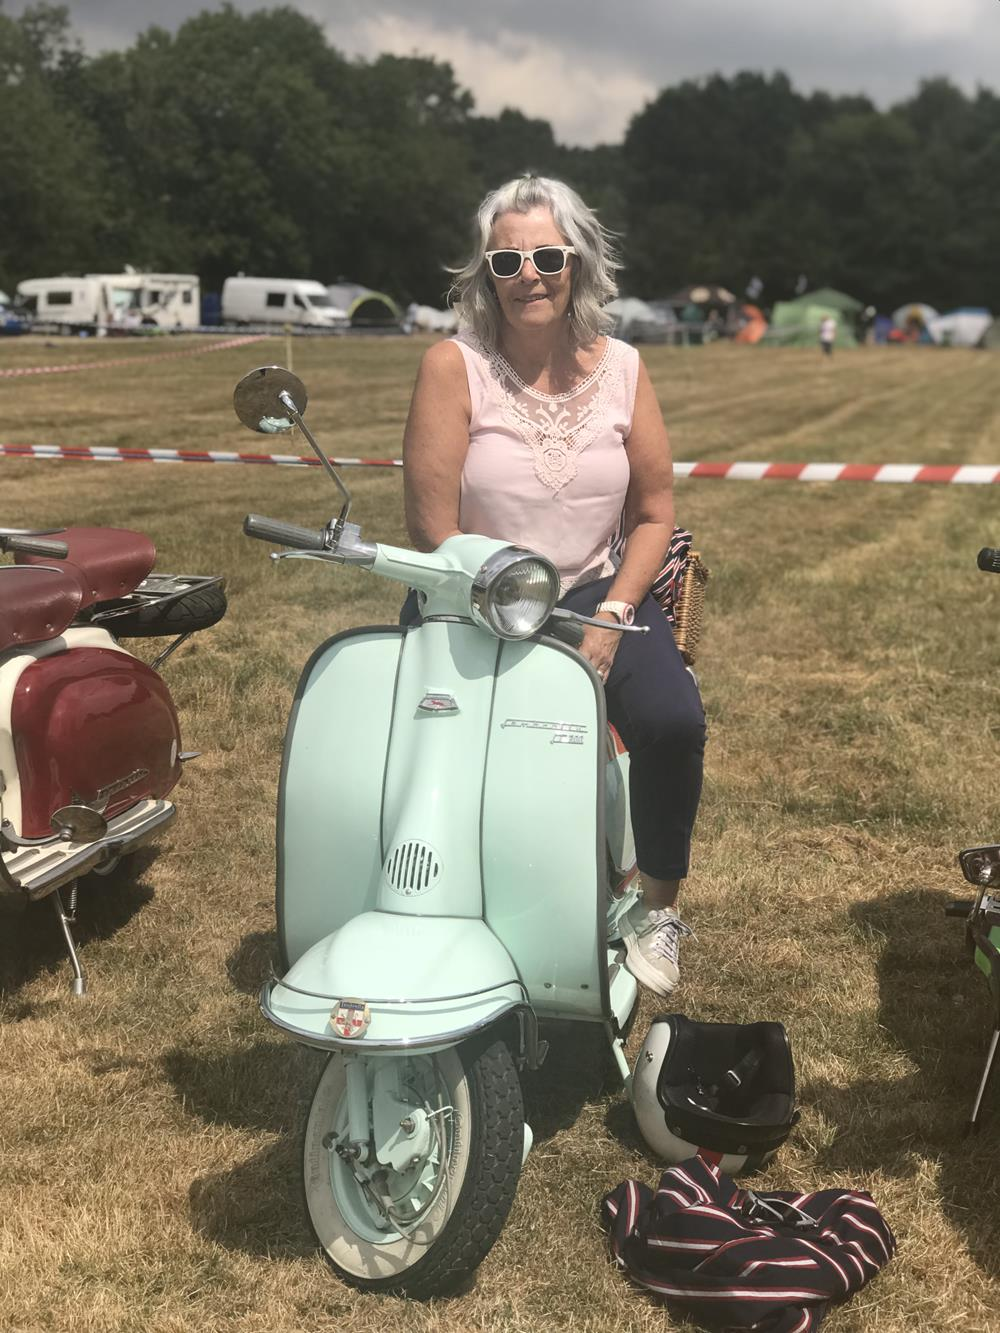 Lady sitting on a Lambretta LI 200 scooter at the Solent Cougars scooter rally 2018